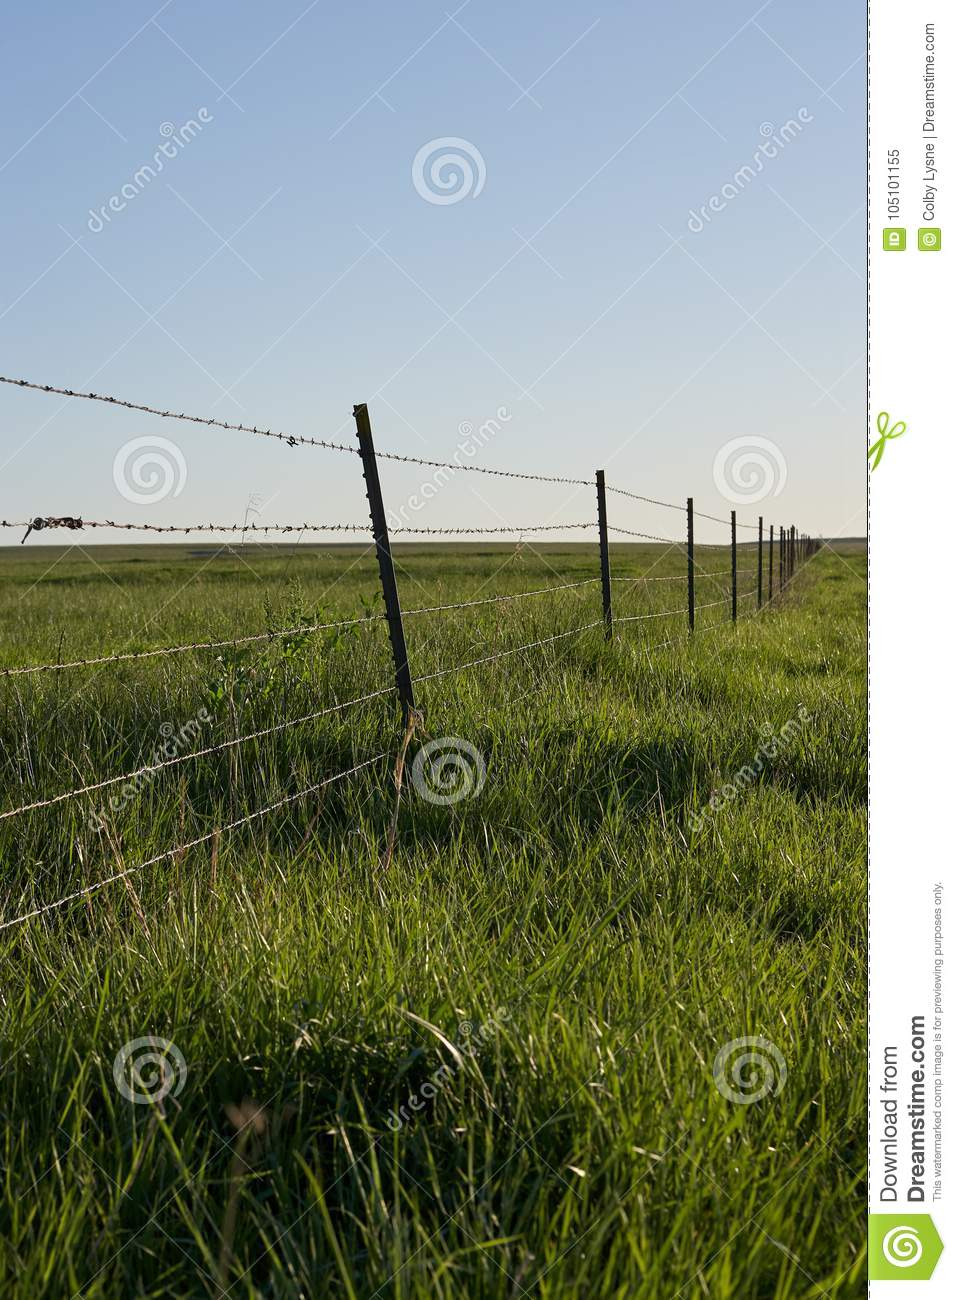 Rustic Barbed Wire Fence In A Lush Green Pasture Stock Image - Image ...